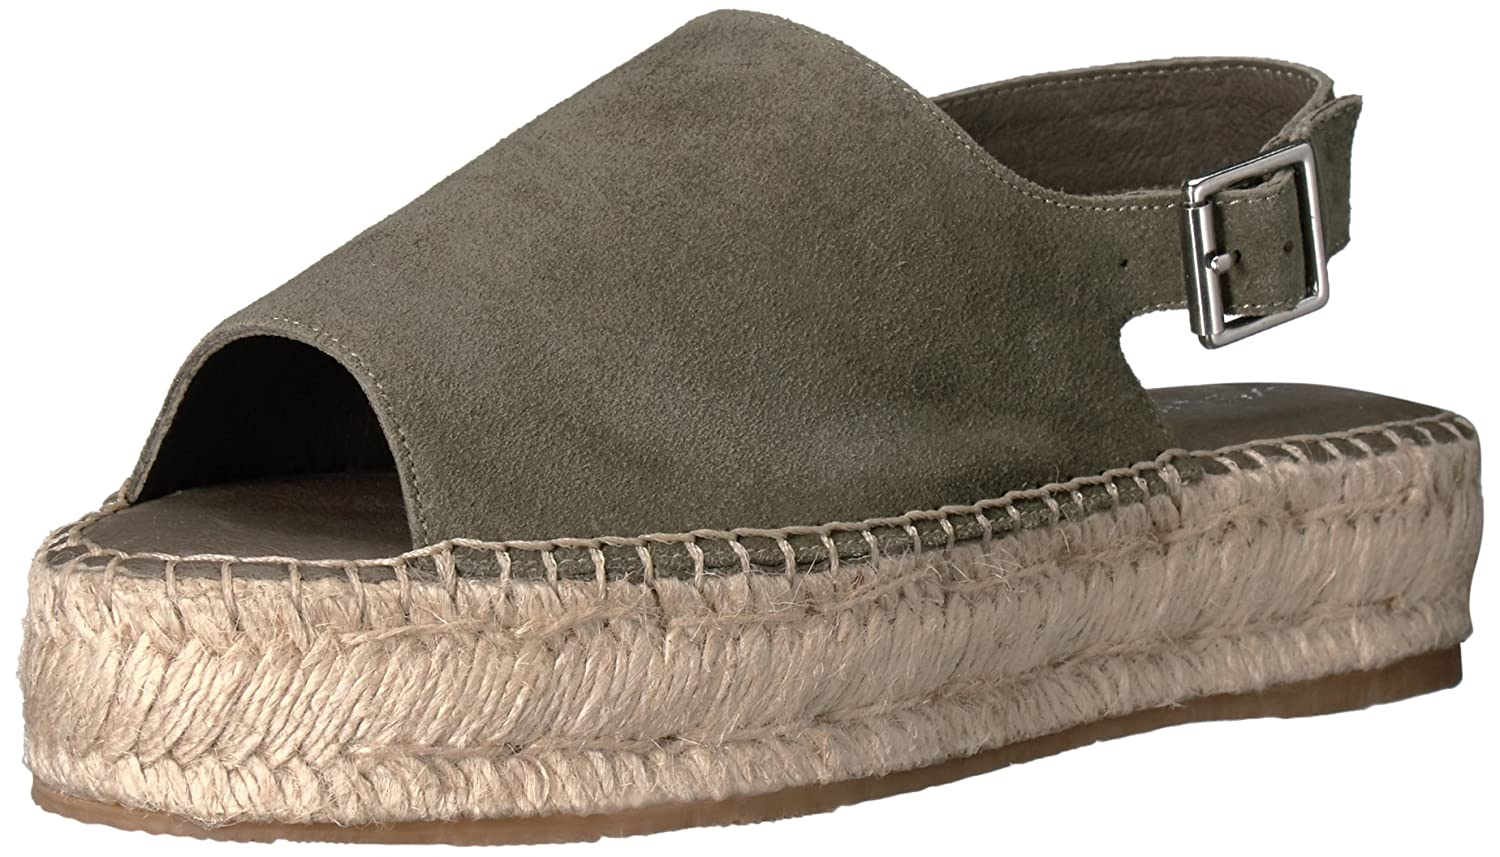 J Slides Women's Rachell Fashion Sneaker B01MYH06C0 7.5 US/US Size Conversion M US|Khaki